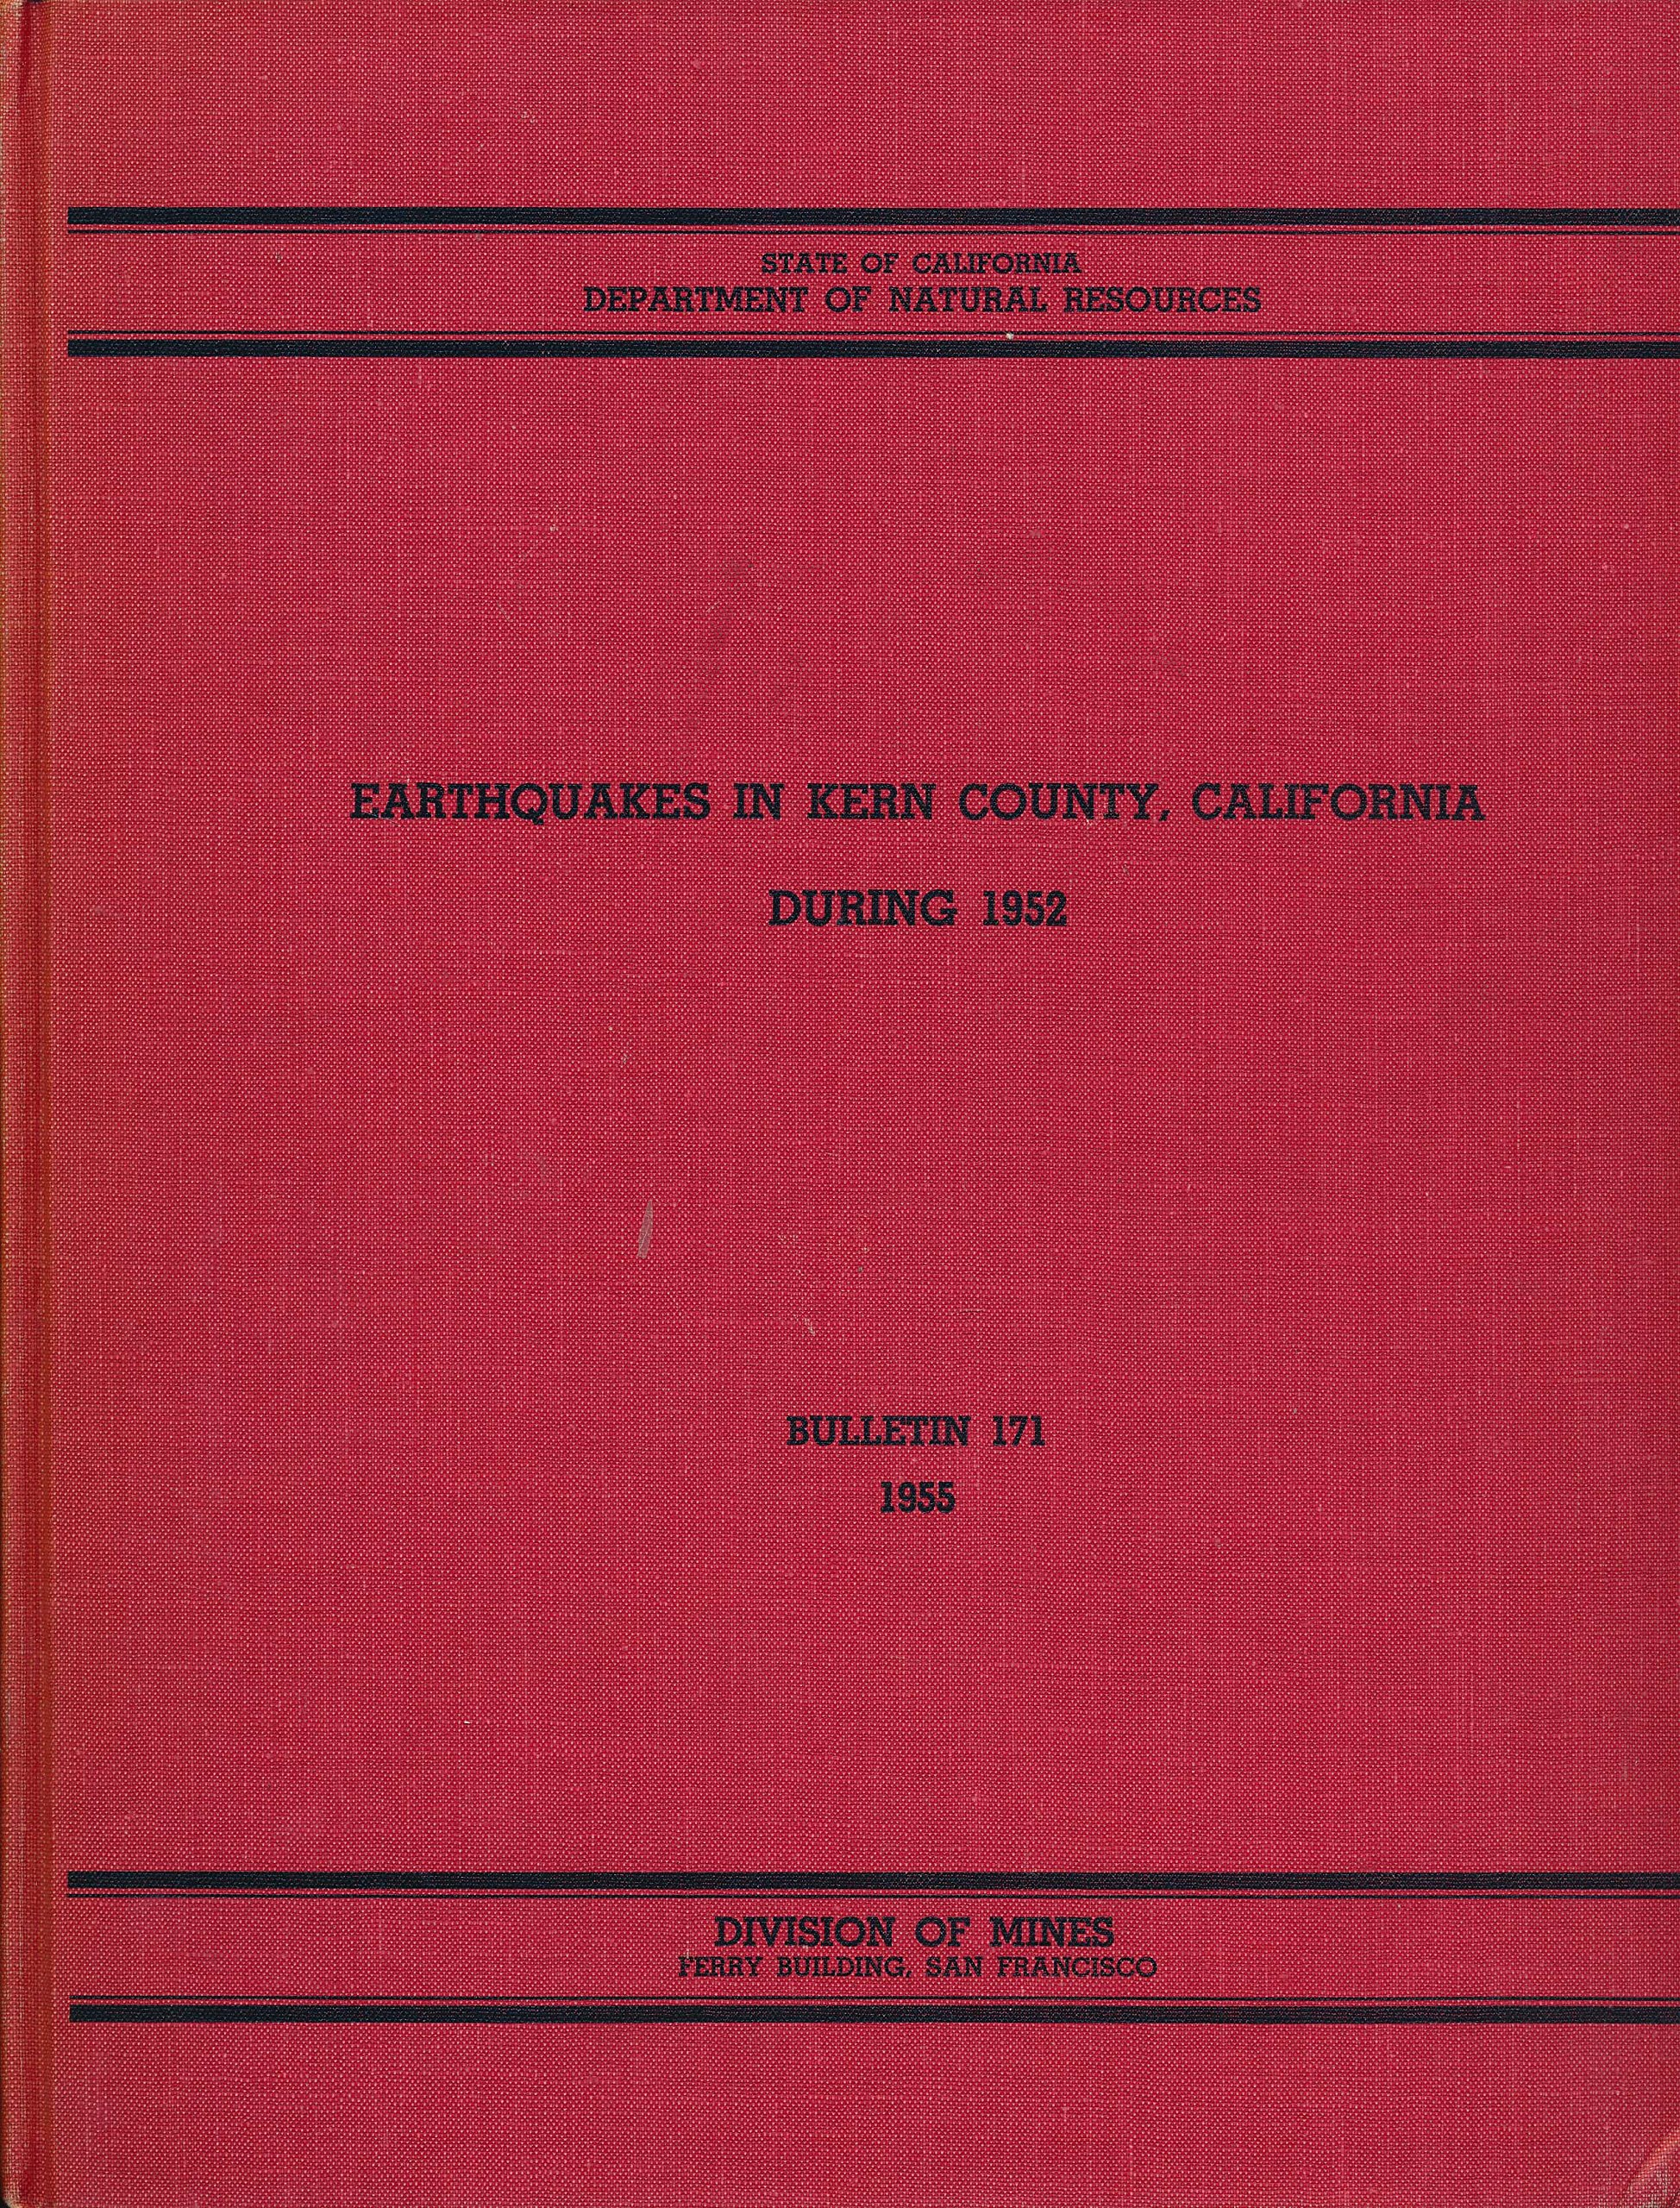 Earthquakes in Kern County California During 1952 (San